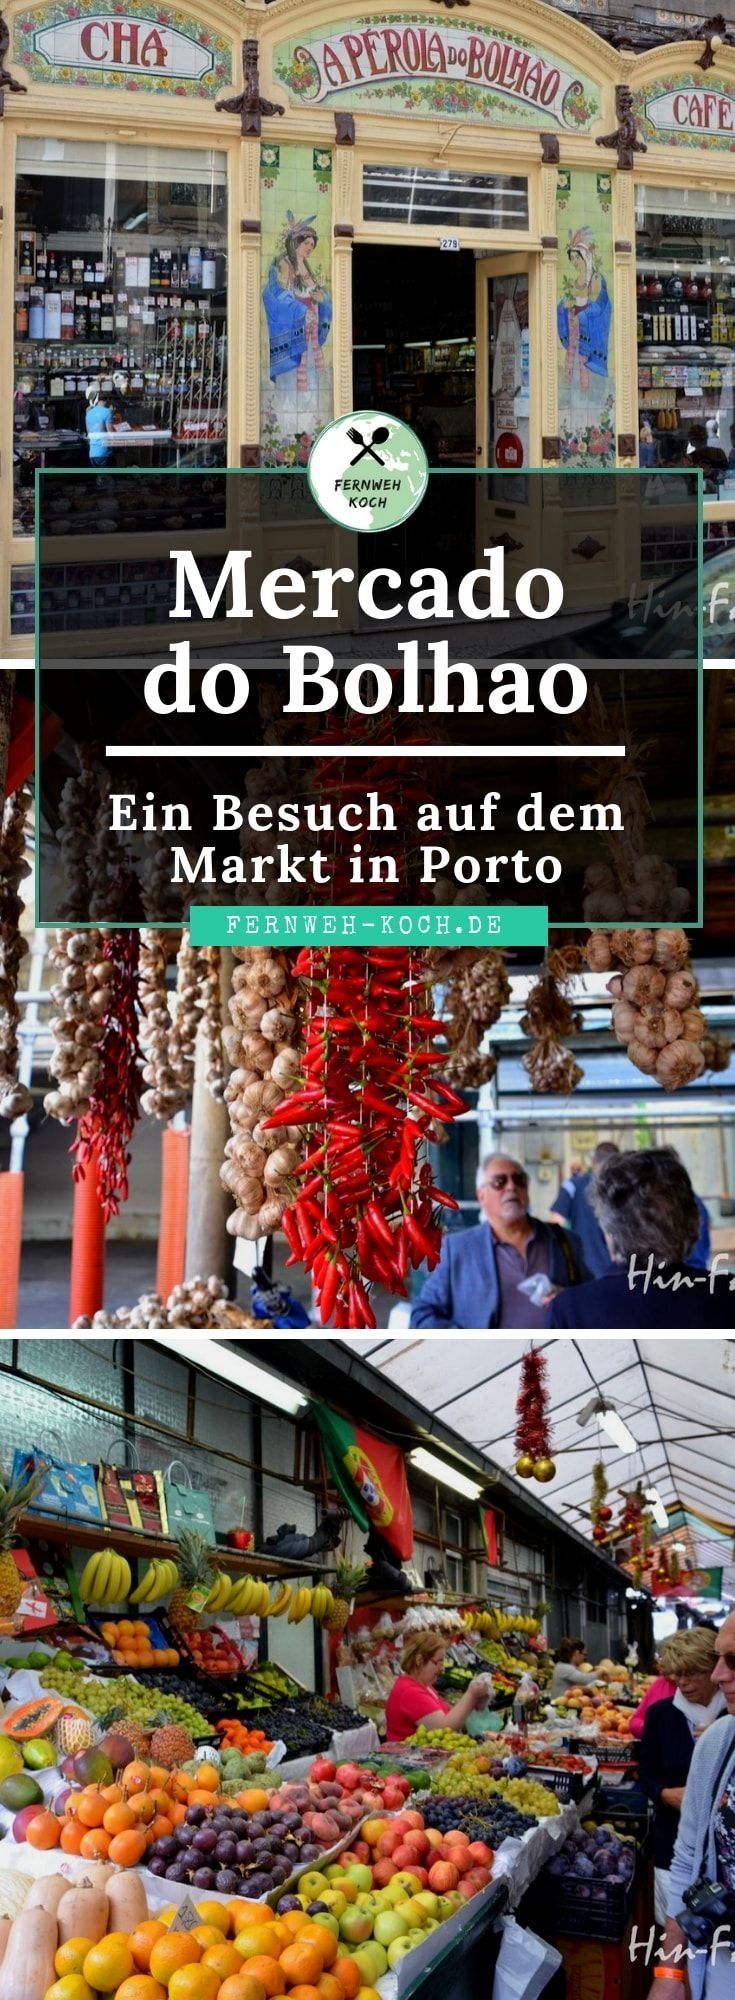 Mercado Bolhao in Porto #portugal